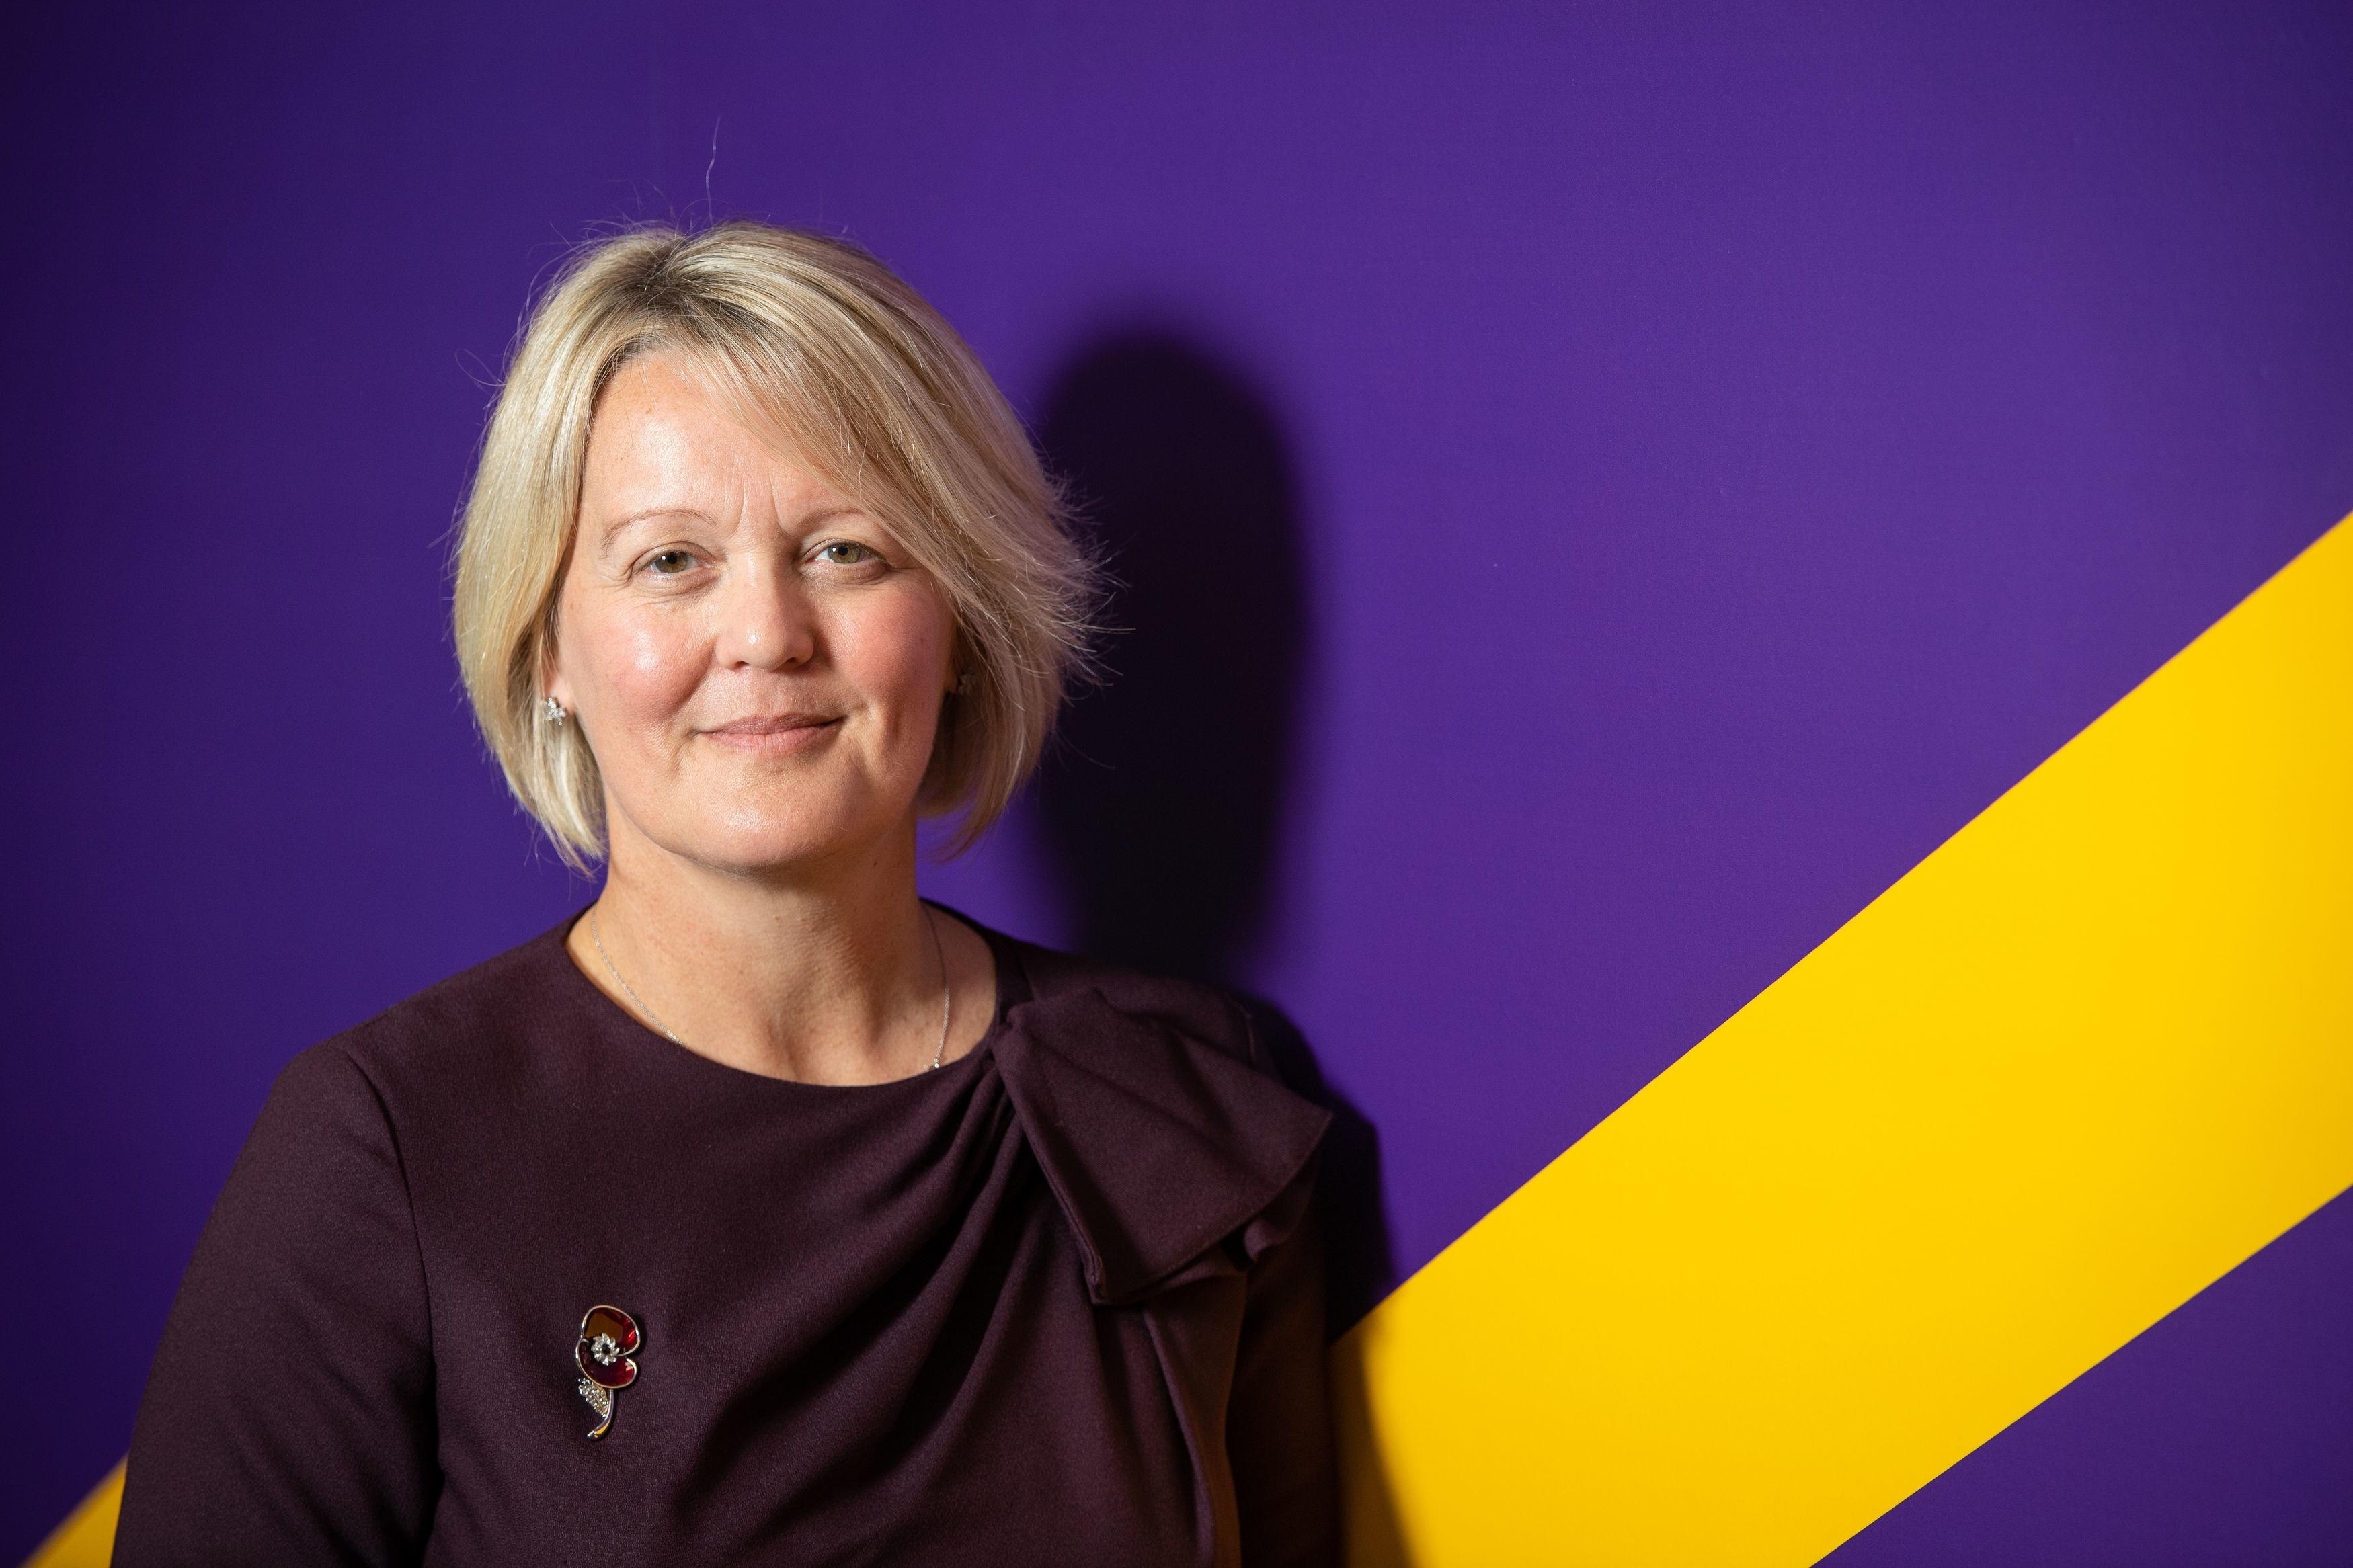 New RBS boss Alison Rose to plot fresh path for the bank